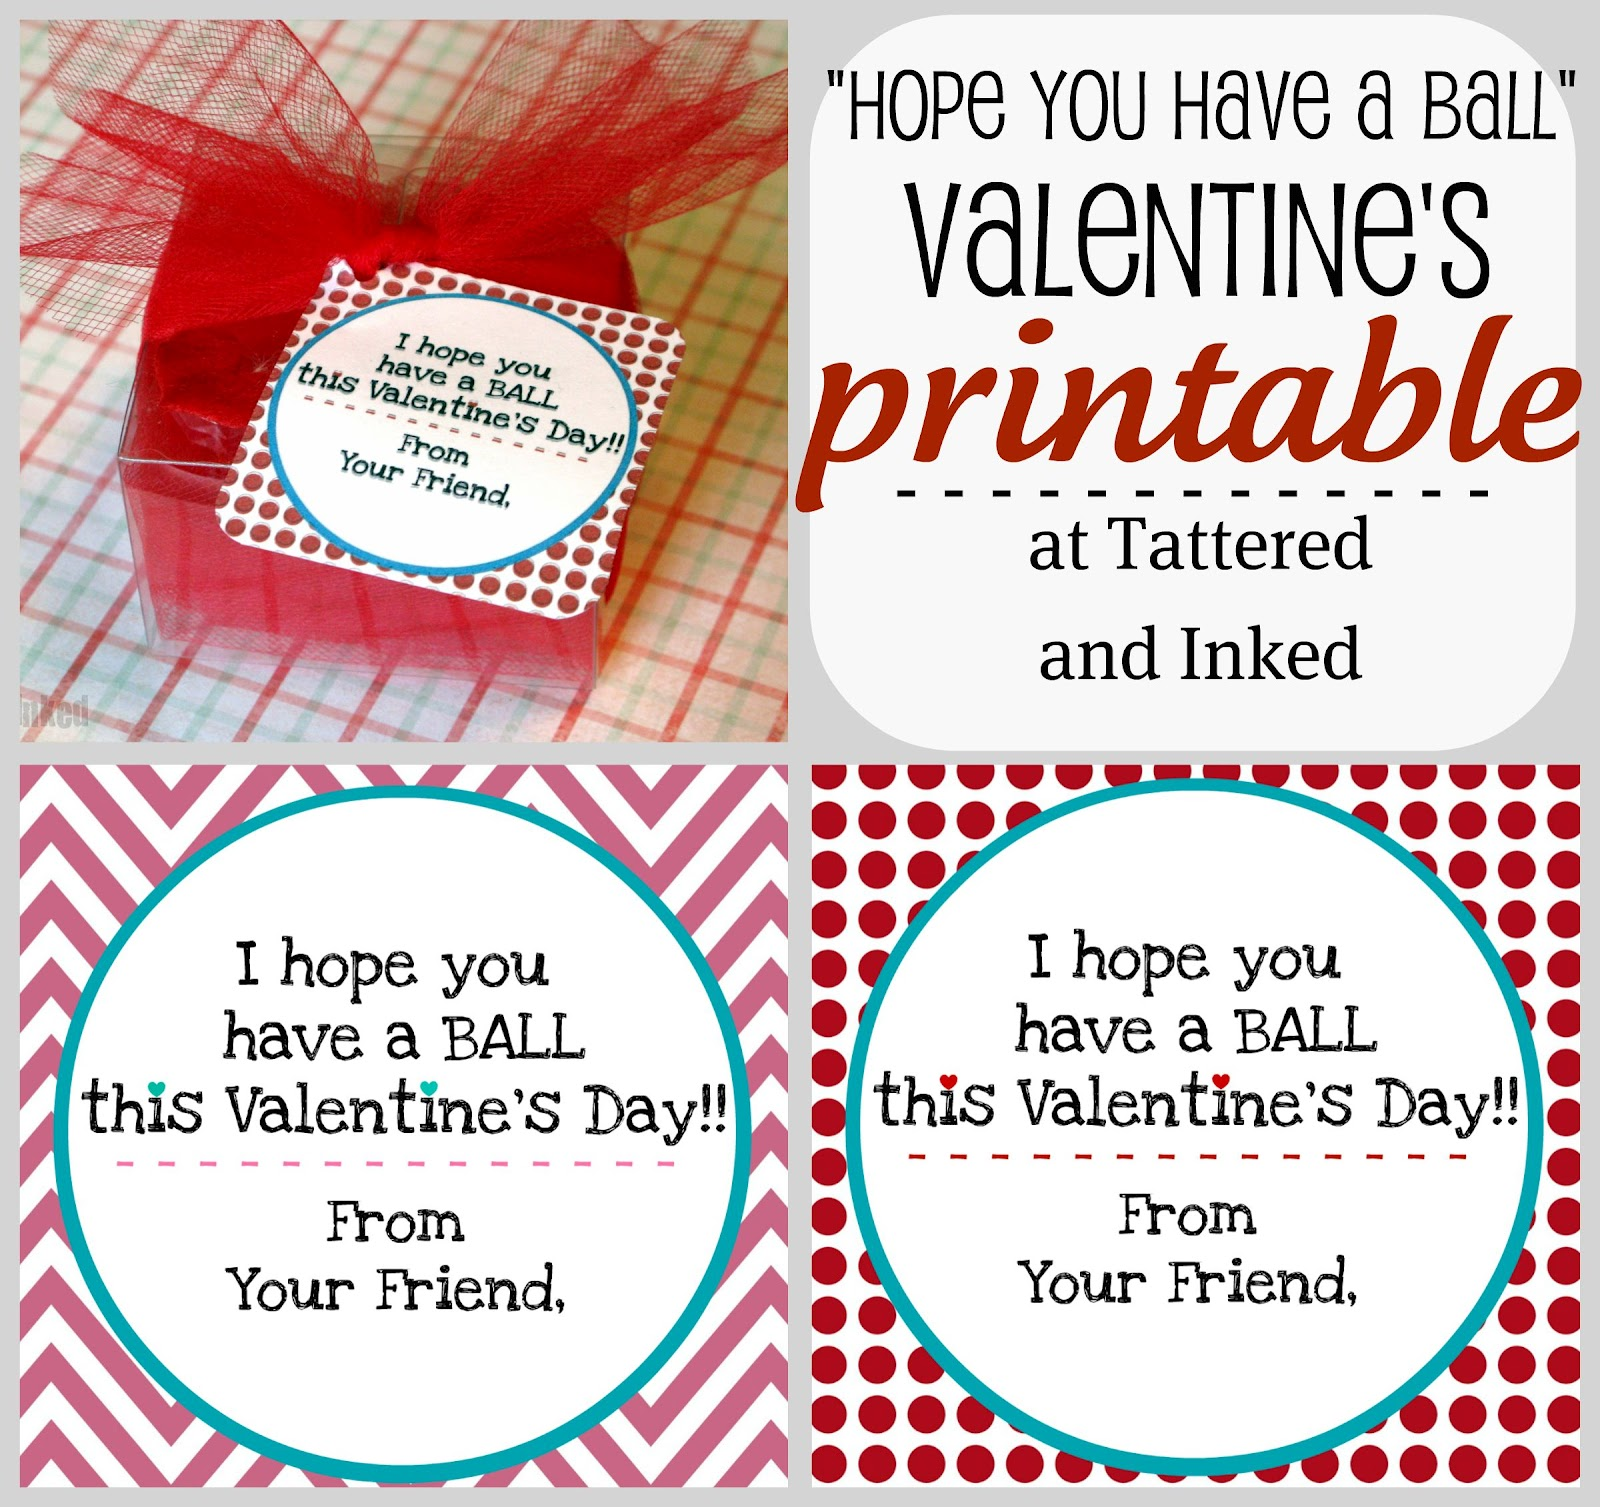 Have a Ball Valentine Printable